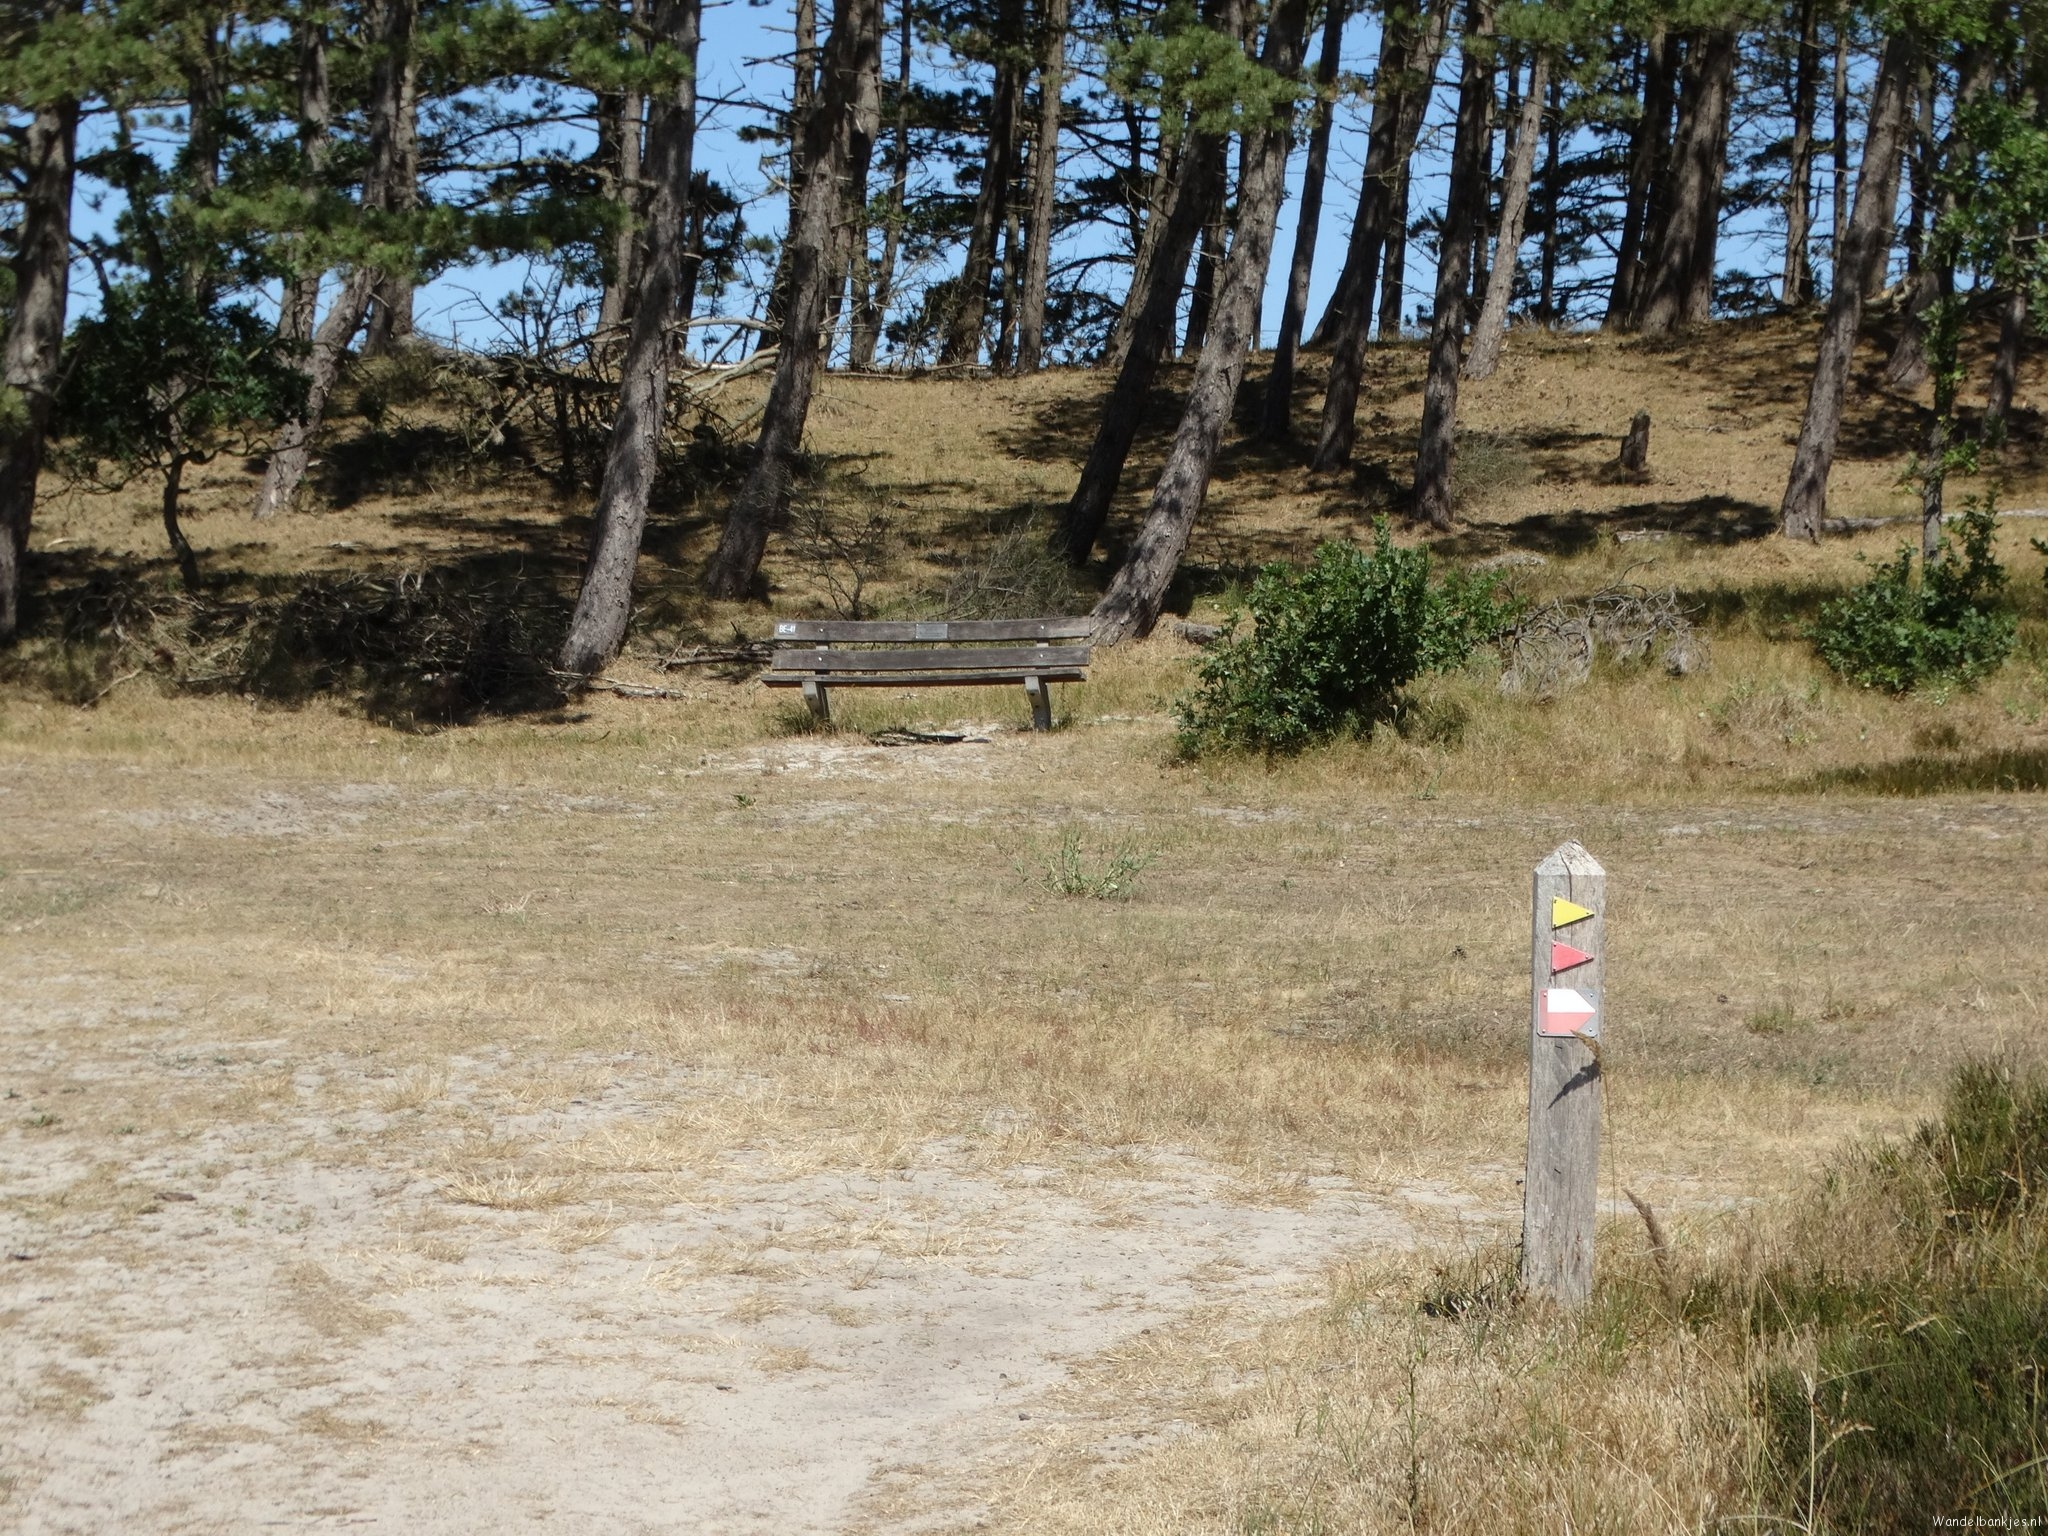 rt-dujo070-walking-benches-in-the-mountains-and-schoorlse-dunes-on-the-law-dutch-coastal path-part-2-https-t-co-uset987jyq